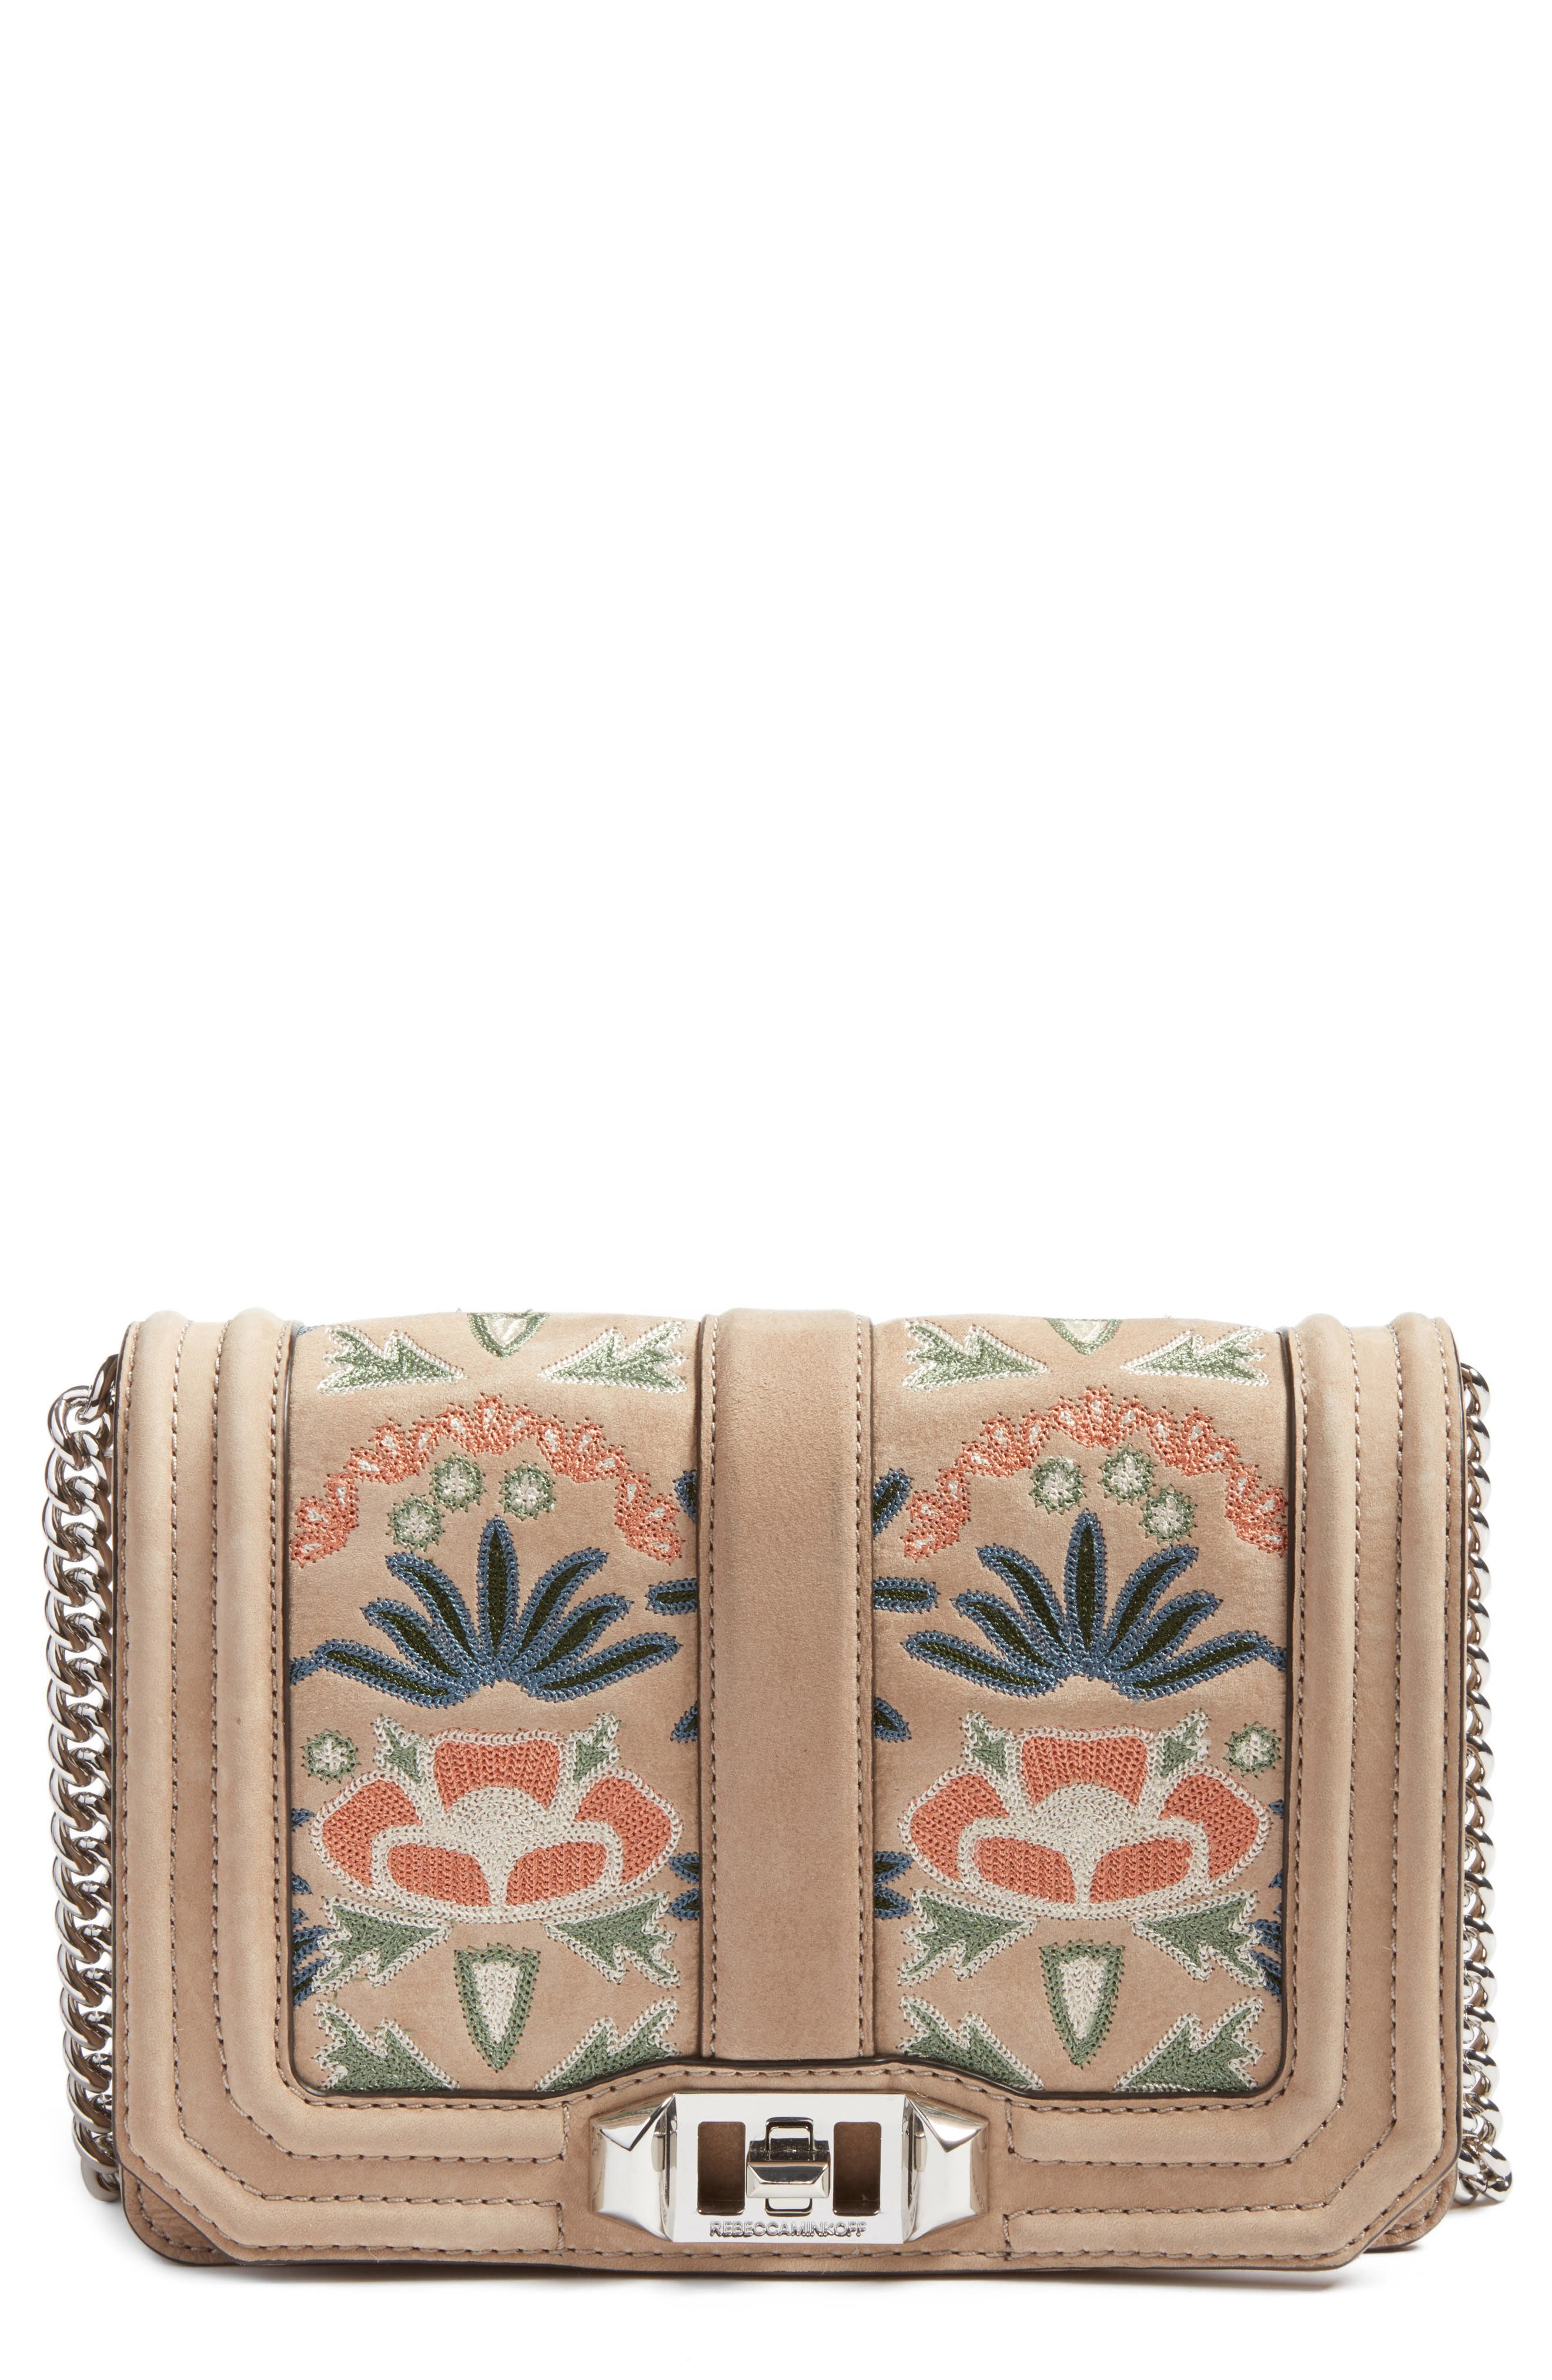 Main Image - Rebecca Minkoff Small Love Embroidered Nubuck Crossbody Bag (Nordstrom Exclusive)